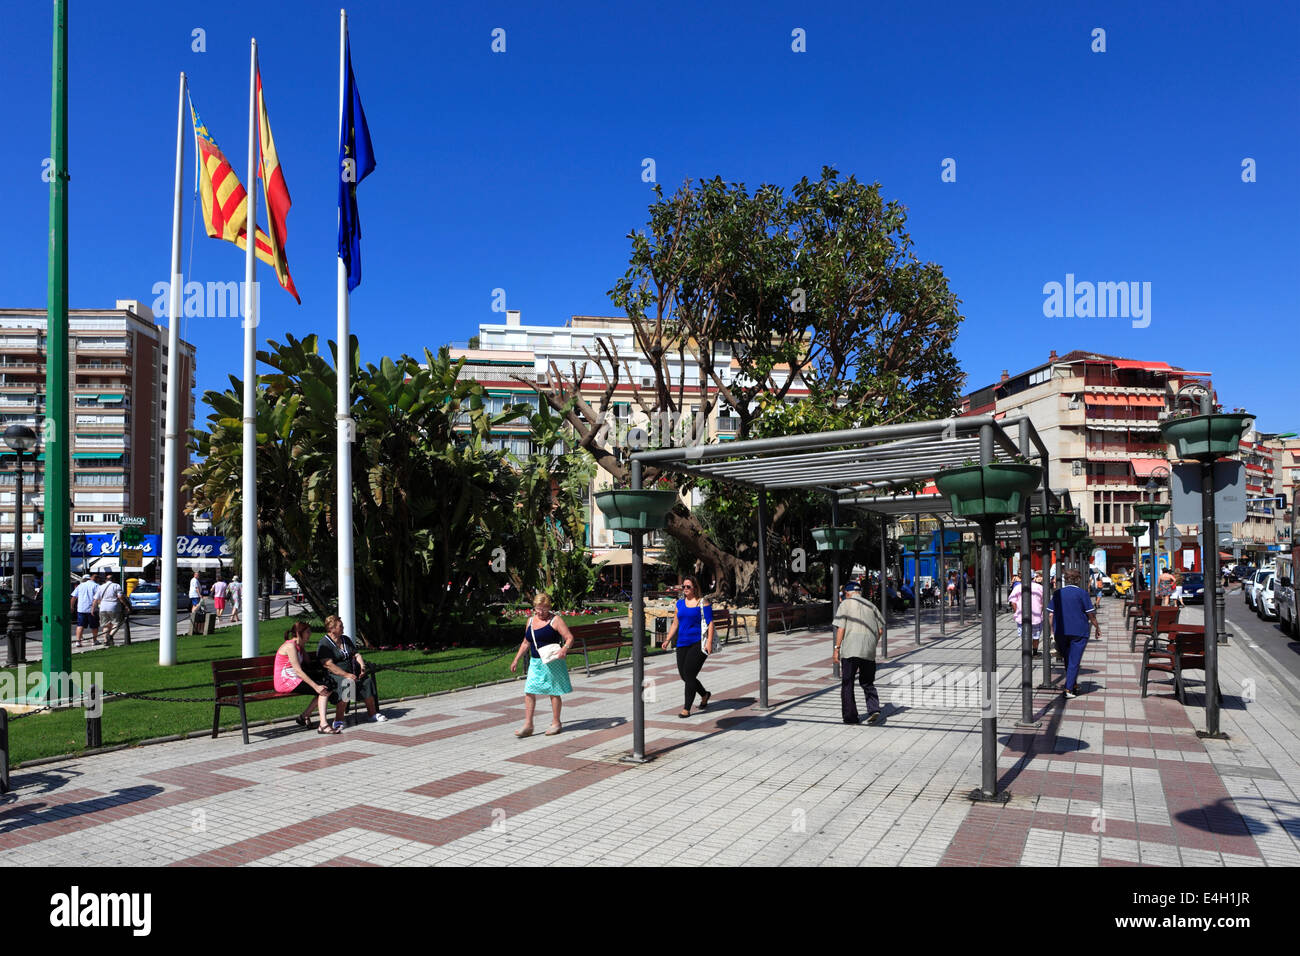 Benidorm Old Town Stock Photos Amp Benidorm Old Town Stock